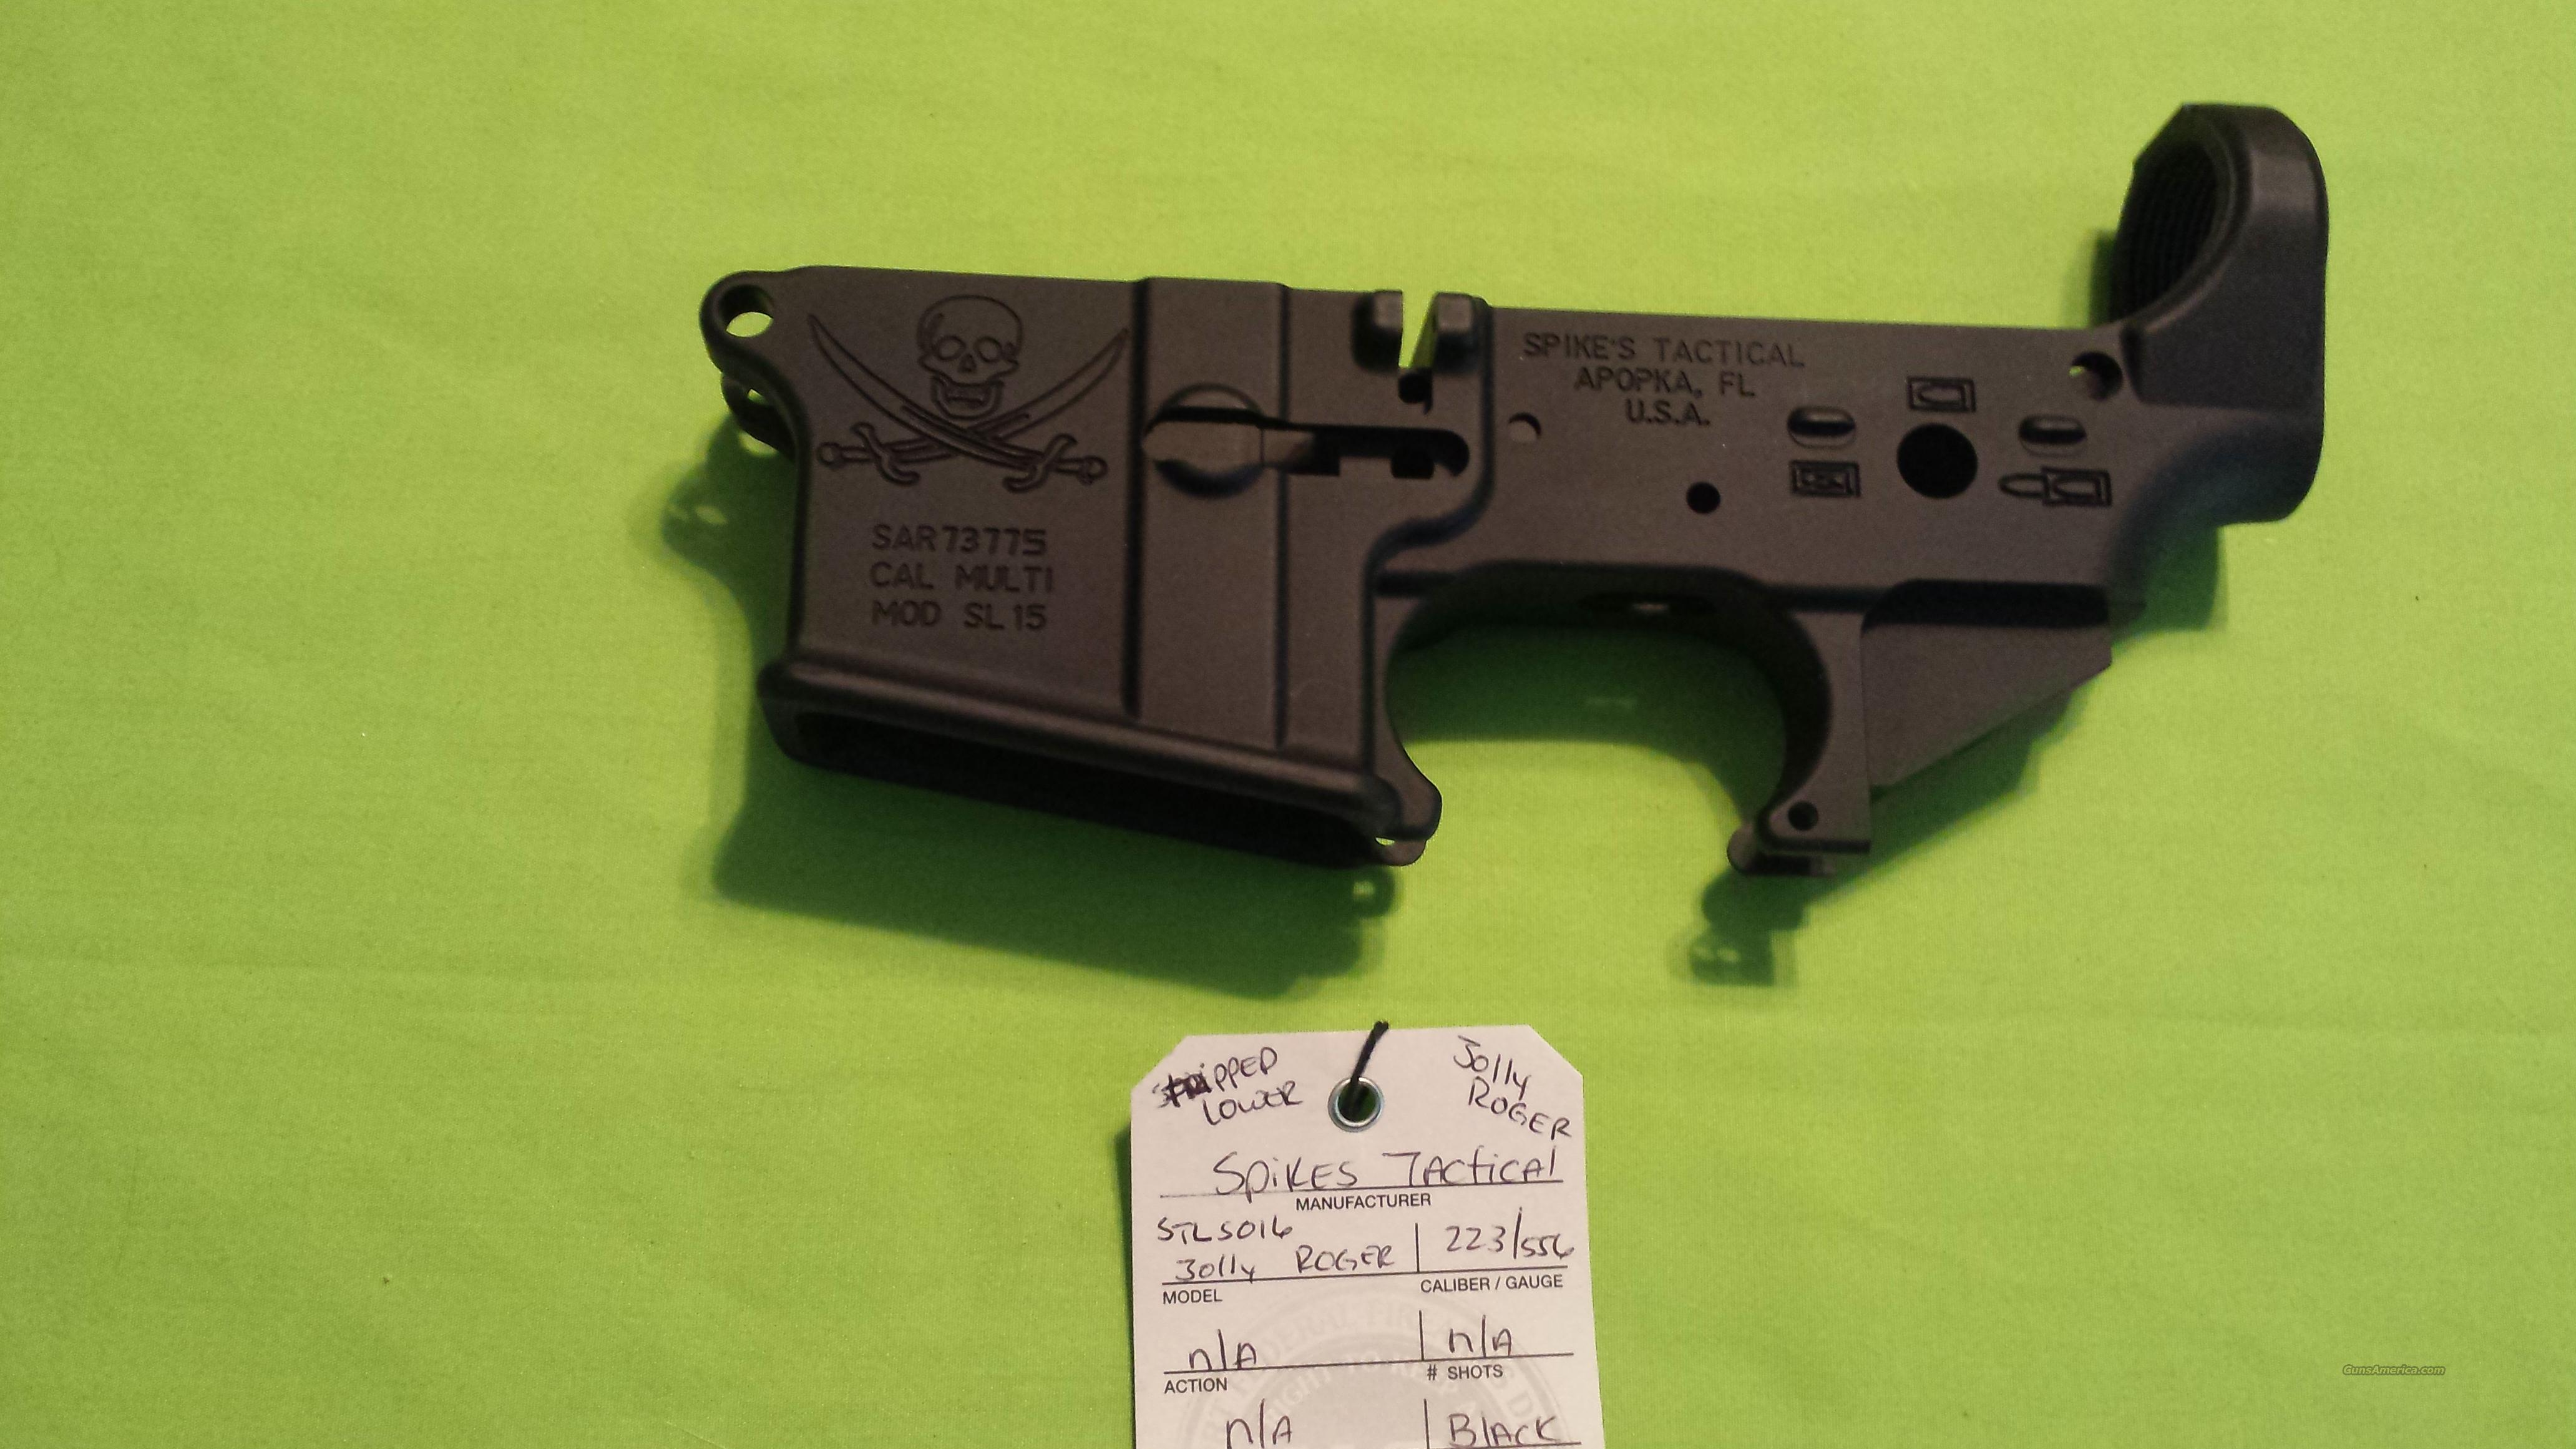 SPIKES STRIPPED LOWER JOLLY ROGER AR15 5.56 223  Guns > Rifles > AR-15 Rifles - Small Manufacturers > Lower Only